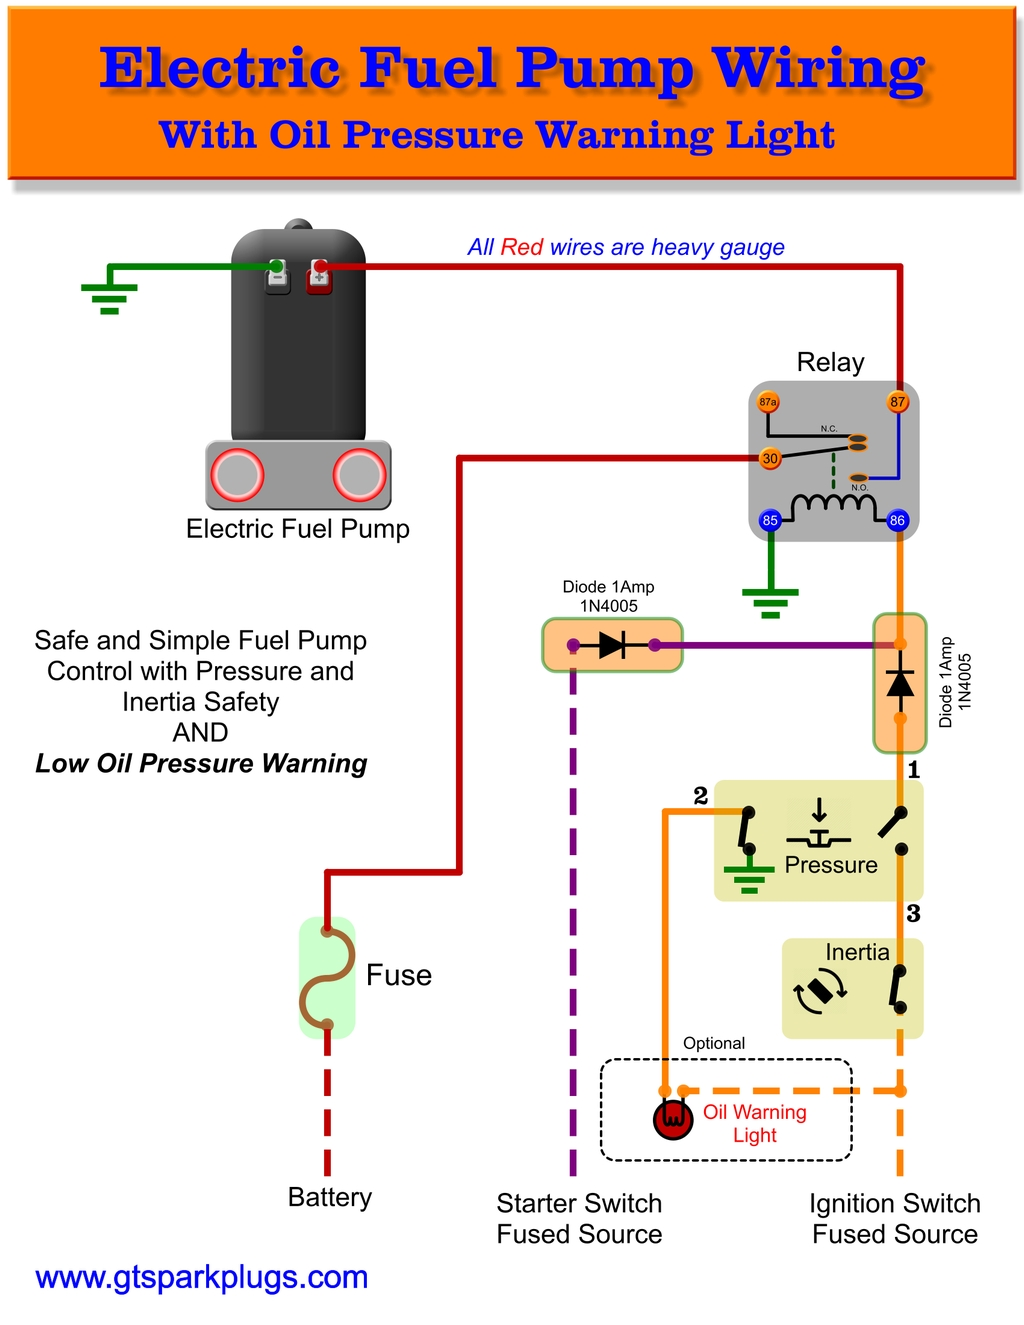 Electric Fuel Pump Wiring Diagram Gtsparkplugs Oil Furnace Limit Switch This Is A Simple Guide To Safer For Your Spend Some Time Things Up Right And In The Event Of Problem It Can Save You